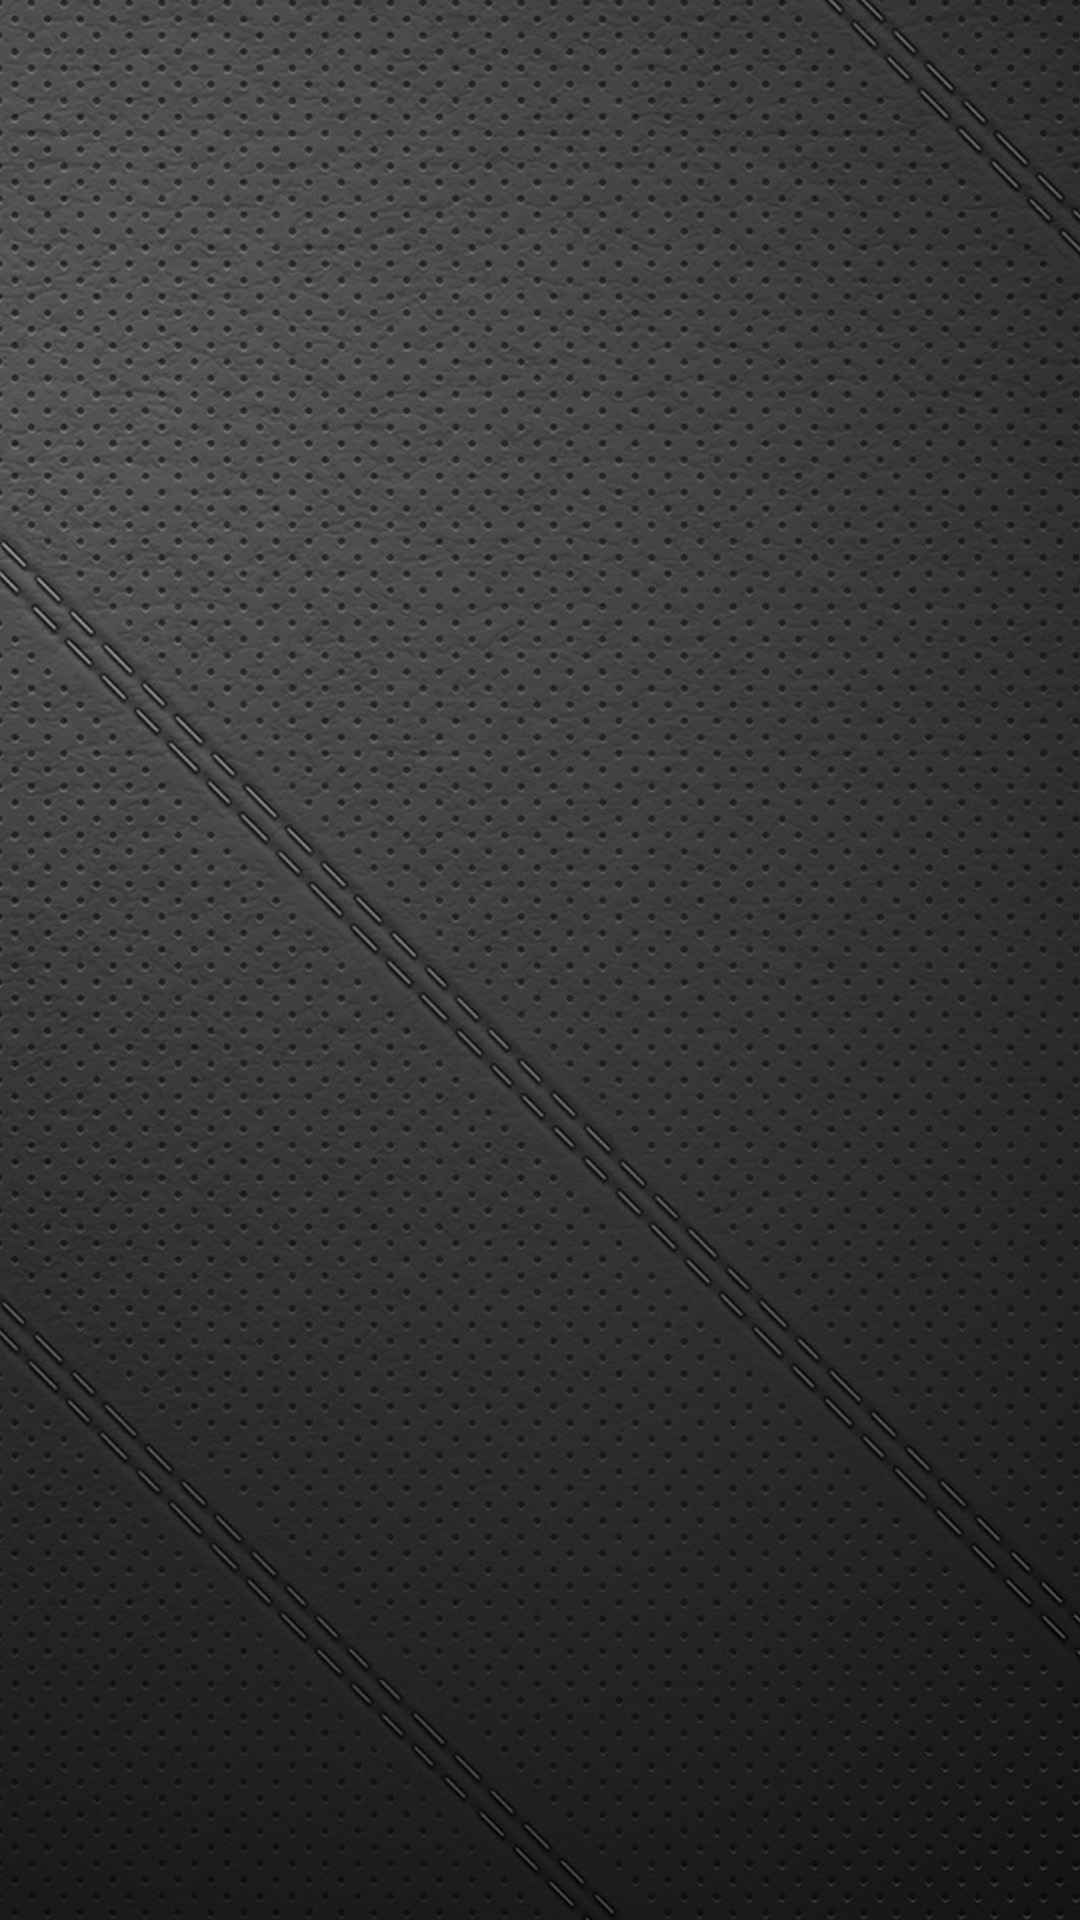 S4 Mini HD Wallpapers